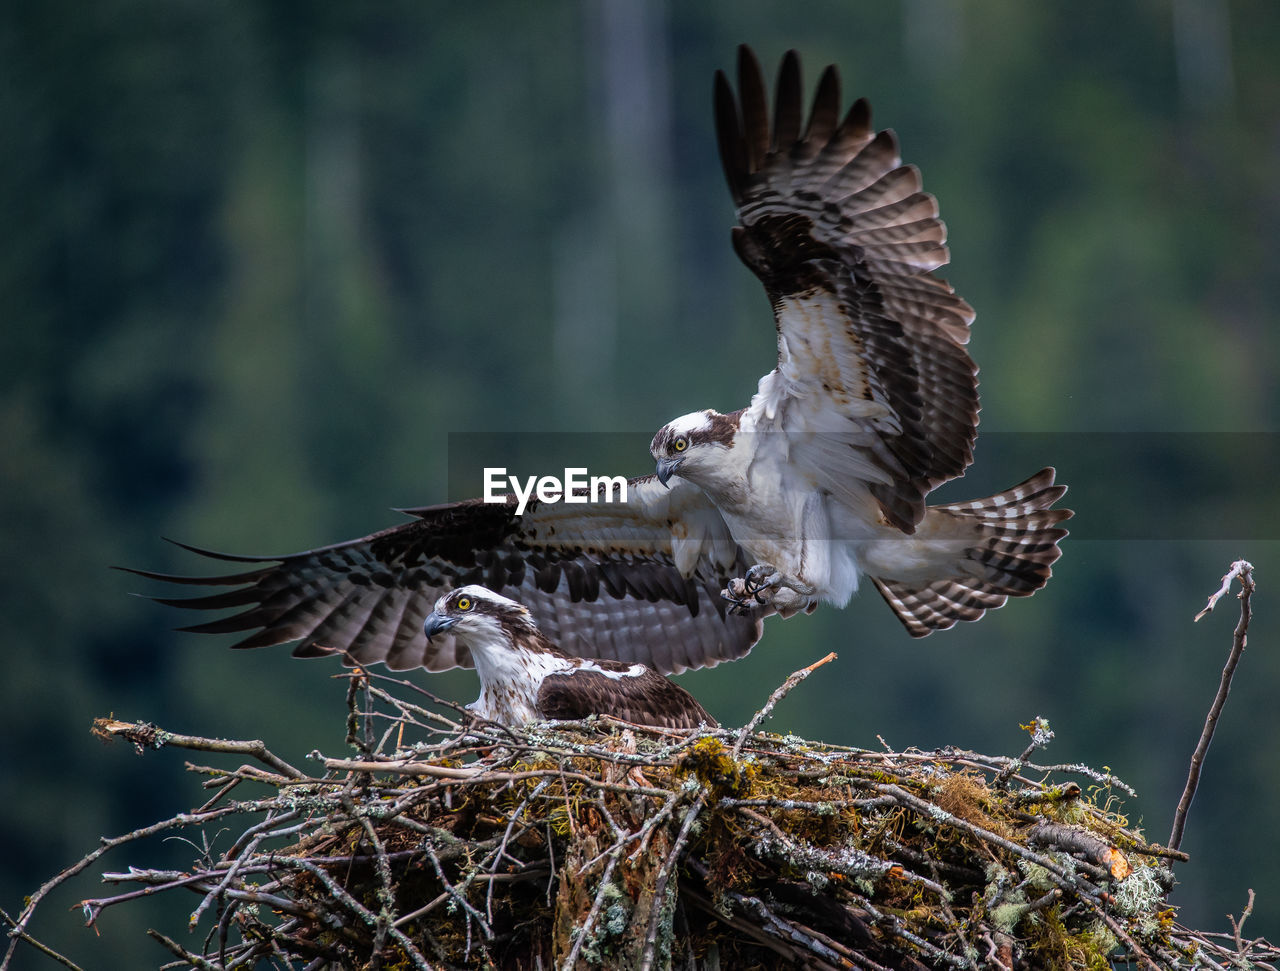 bird, animals in the wild, animal wildlife, animal themes, animal, spread wings, vertebrate, flying, bird of prey, one animal, focus on foreground, nature, no people, day, mid-air, tree, outdoors, close-up, plant, branch, eagle